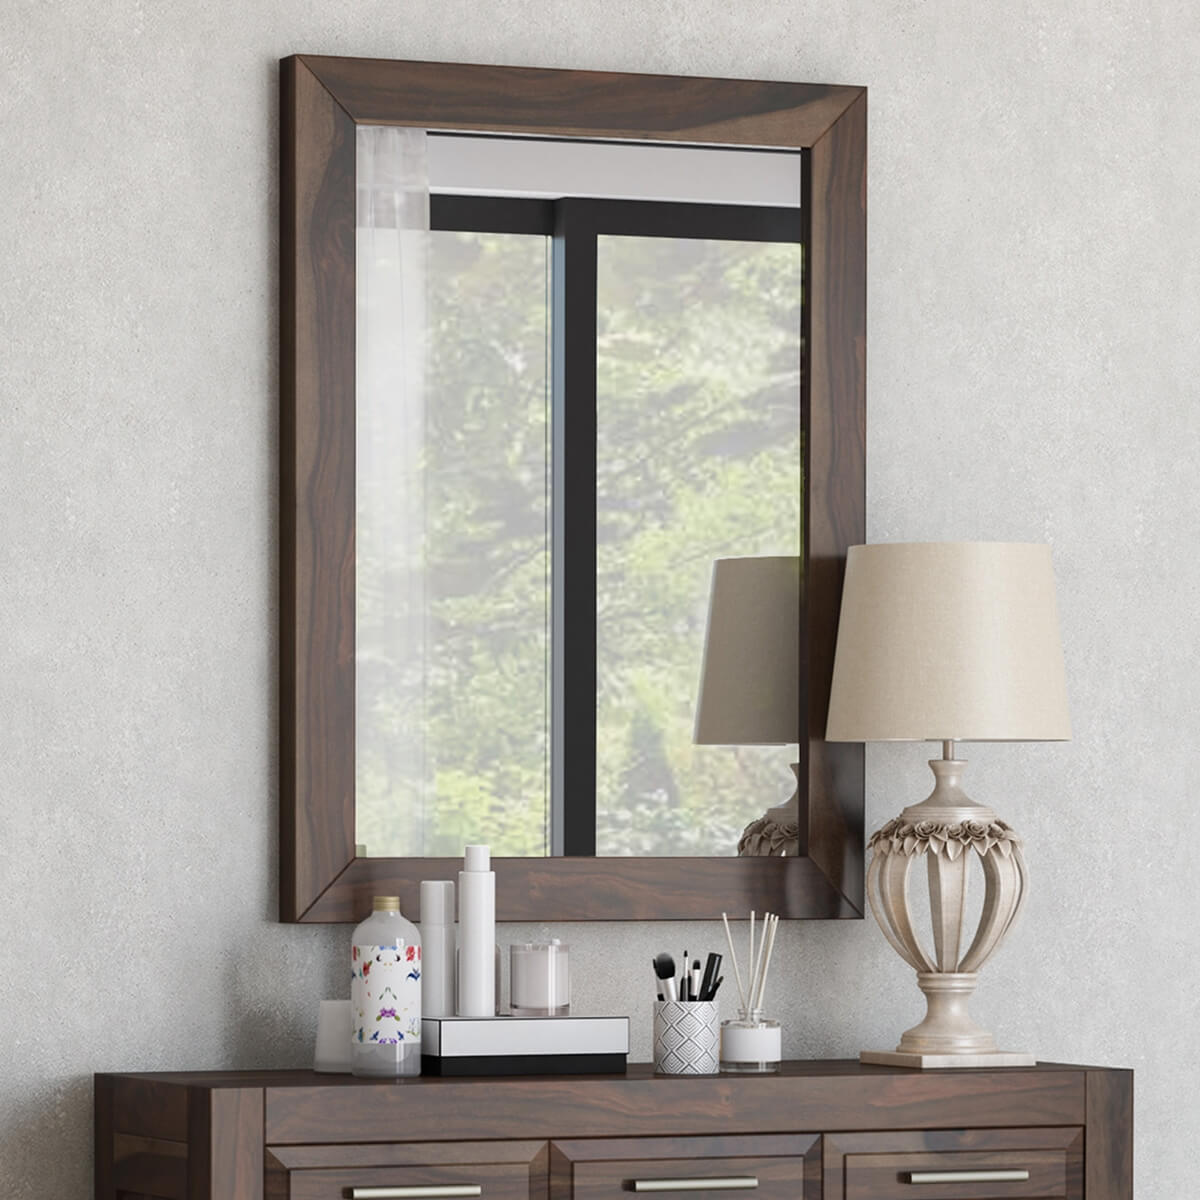 Sierra Nevada Handcrafted Solid Wood Rustic Large Fully Mirror Frame